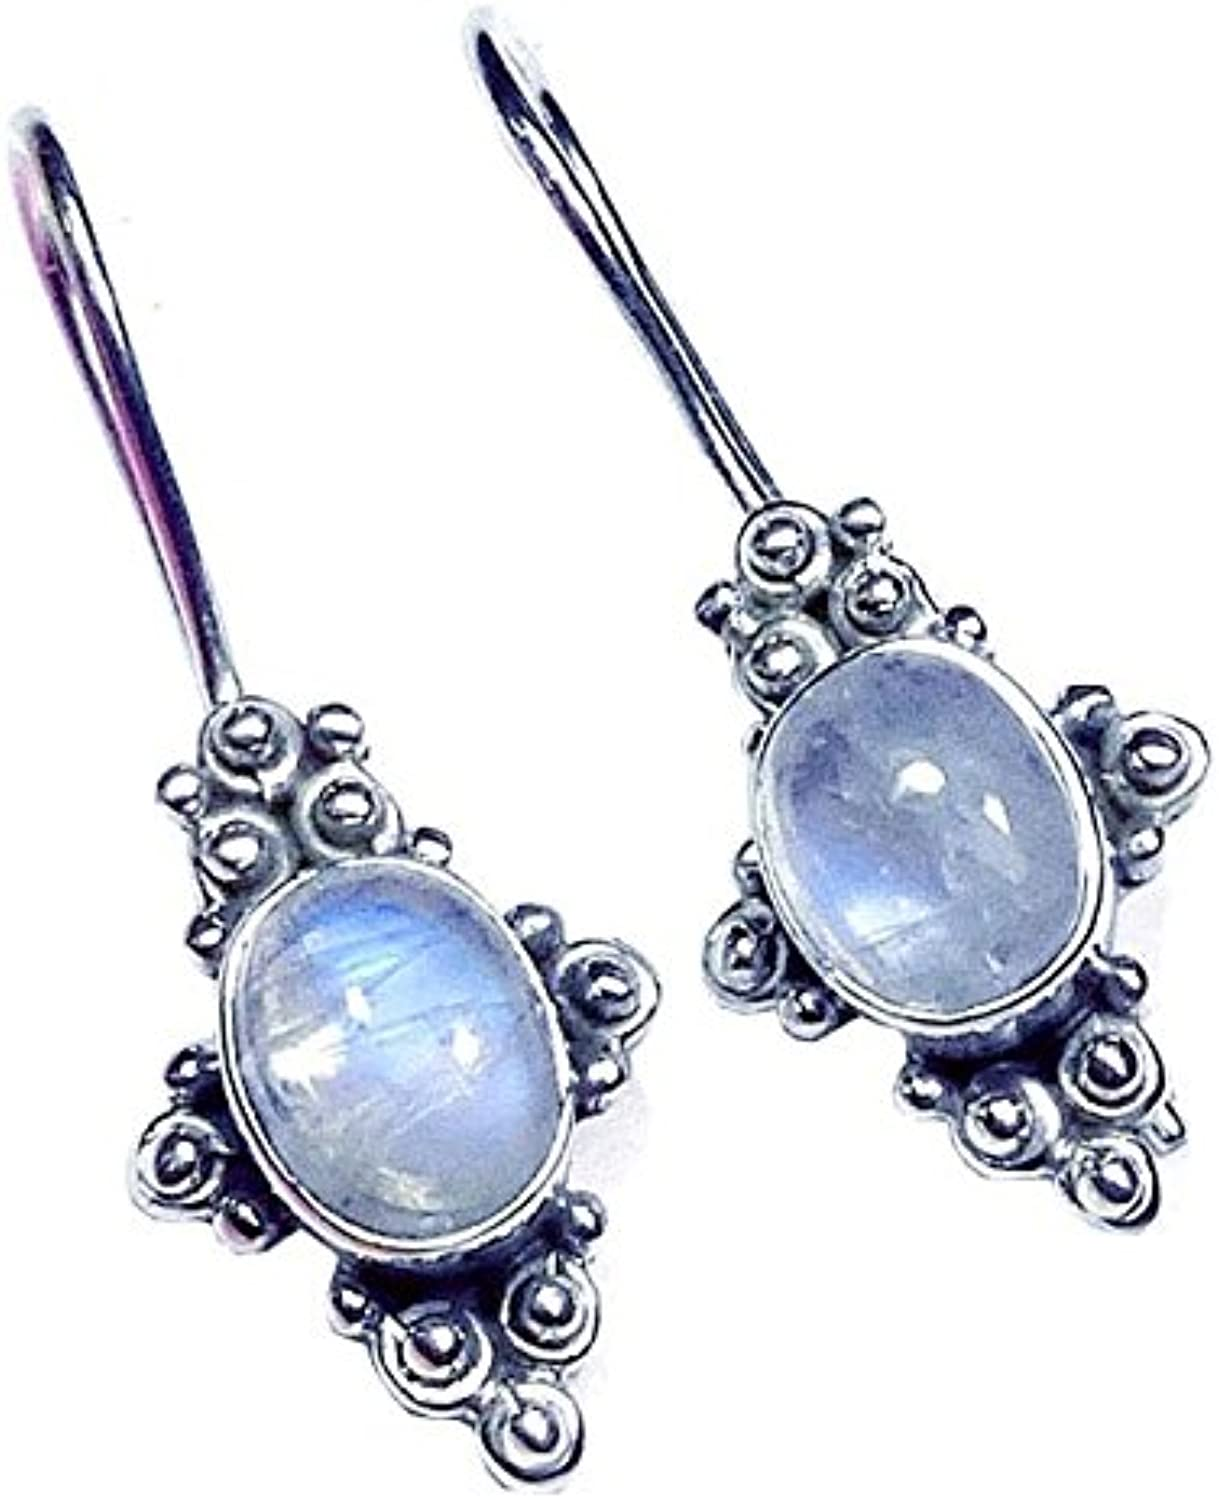 Sitara Collections SC10430 Sterling Silver Earrings, Rainbow Moonstone Cabochon